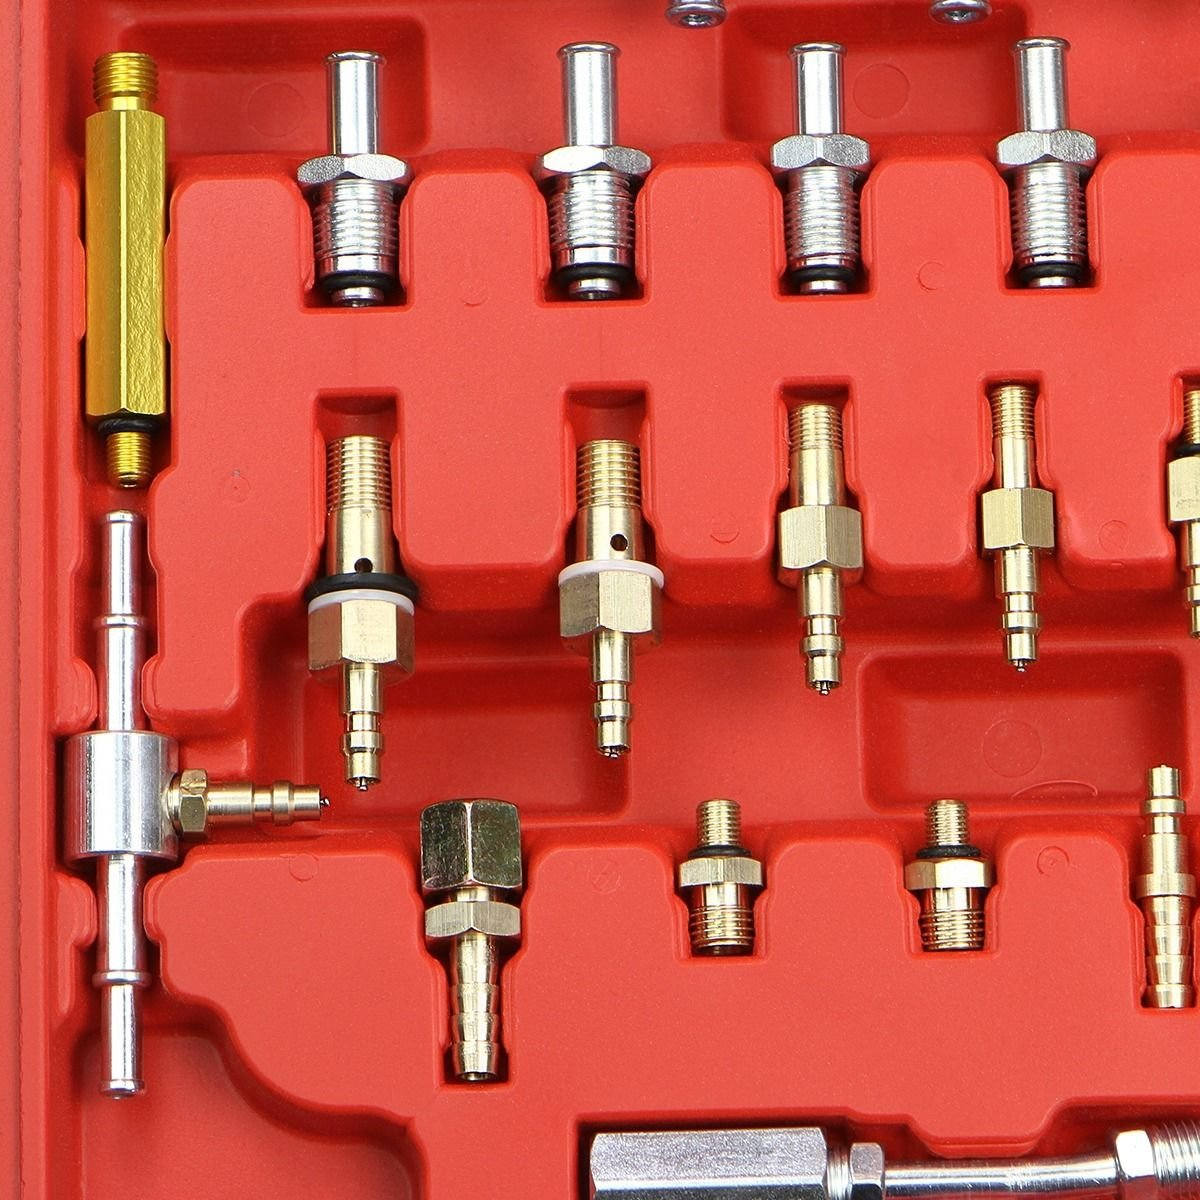 PMD Products Manometer Fuel Injection Pressure Tester Gauge Kit System w/Schrader Valve Fittings 0-140 psi by PMD Products (Image #6)